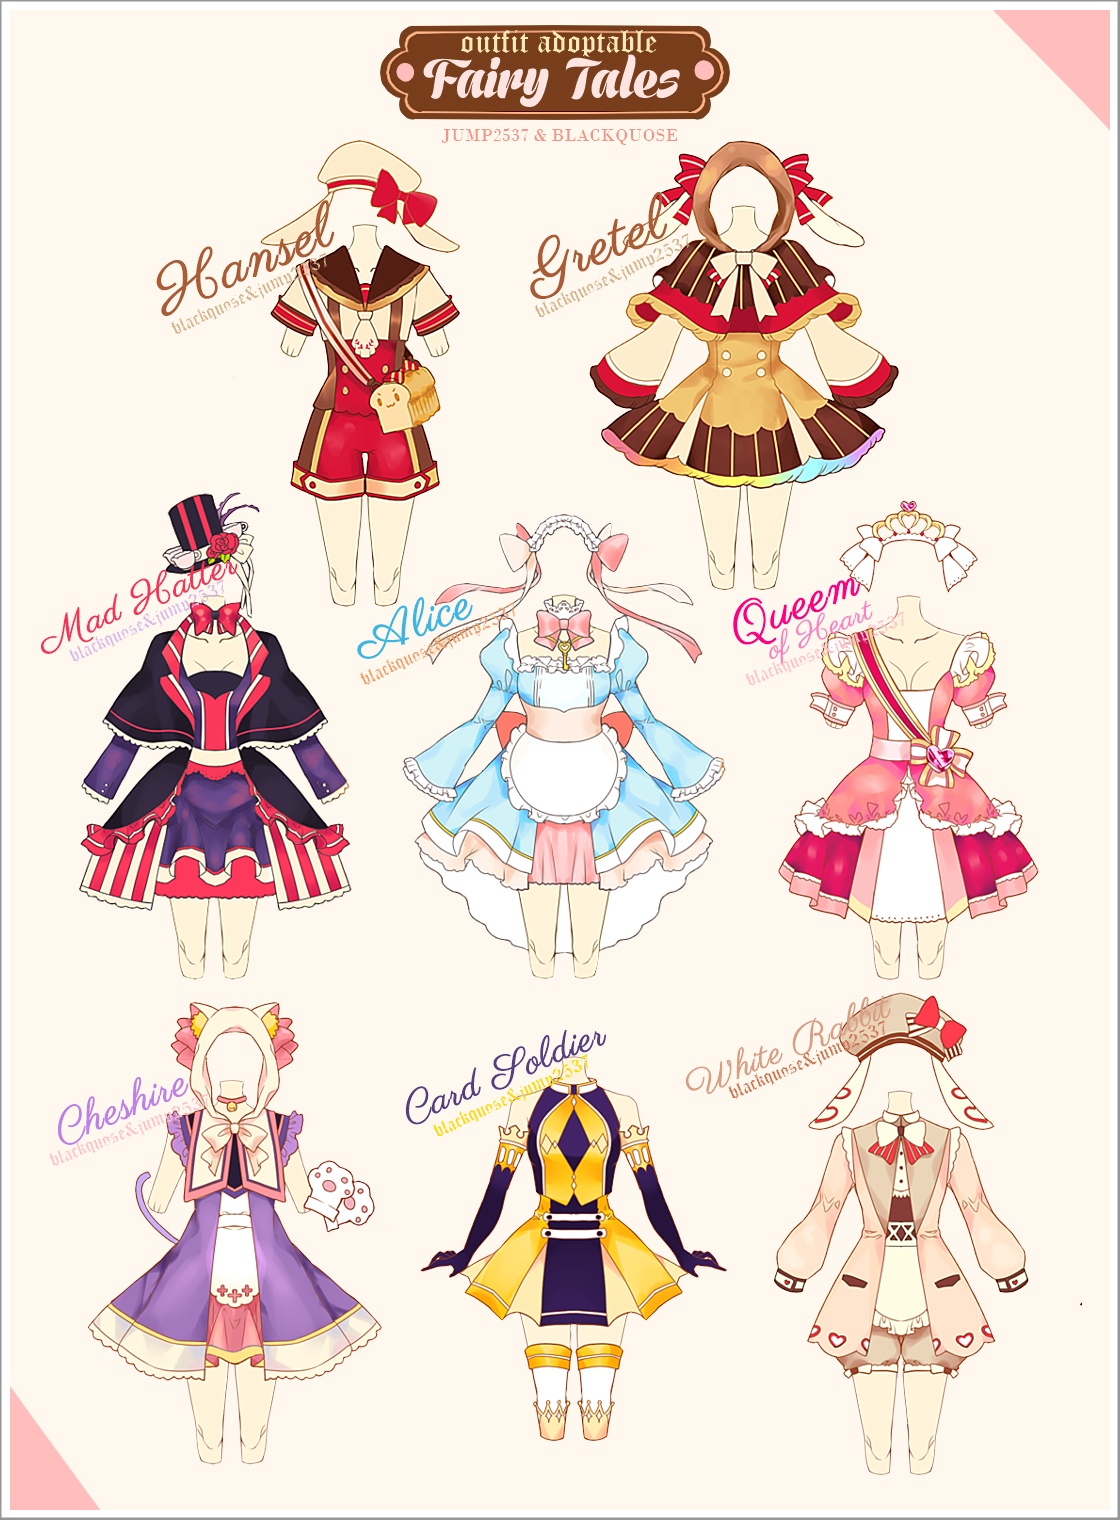 Fairy Tales Outfit Adoptable 10